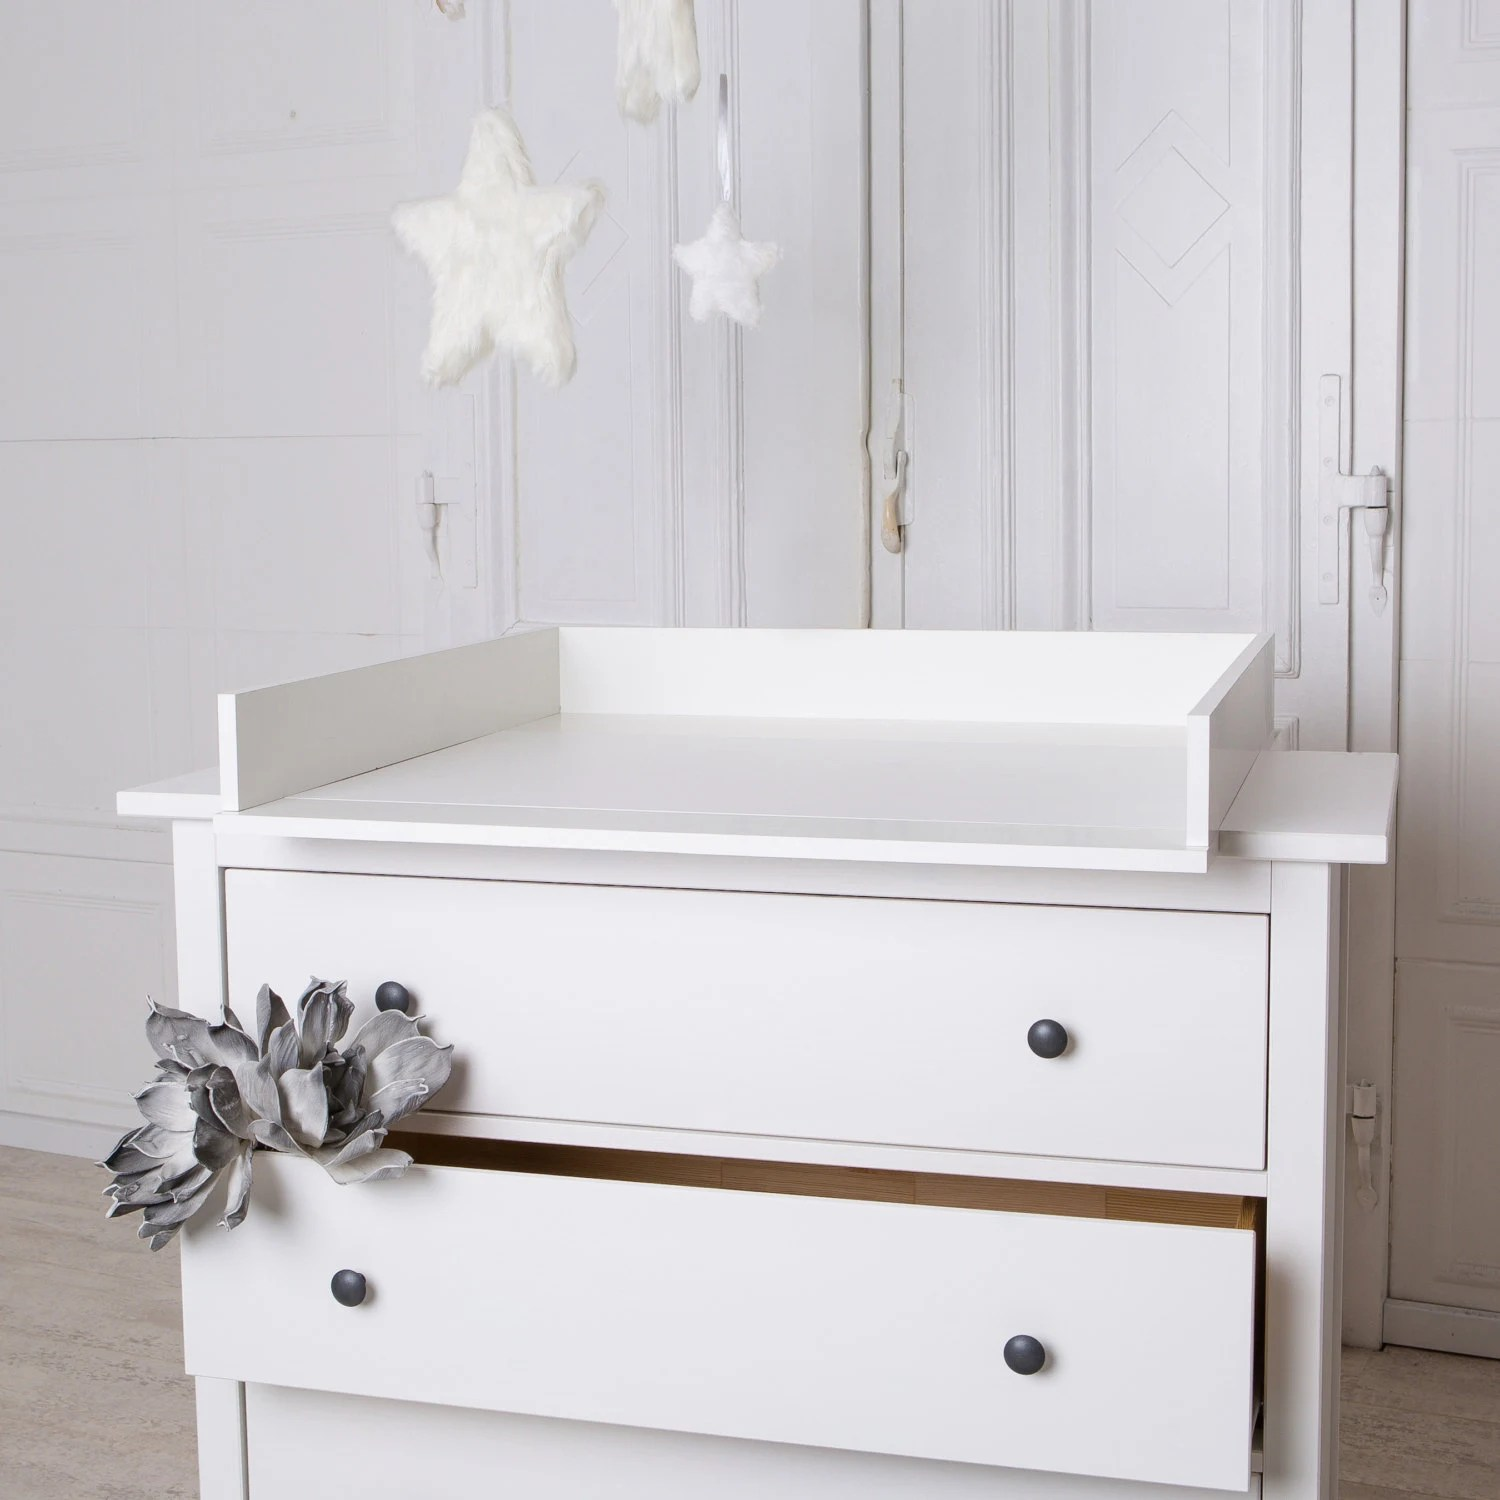 Changing Table Chest Of Drawers Puckdaddy Handmade Chest Of Drawers Changing Table Top For Ikea Hemnes Dresser In White New